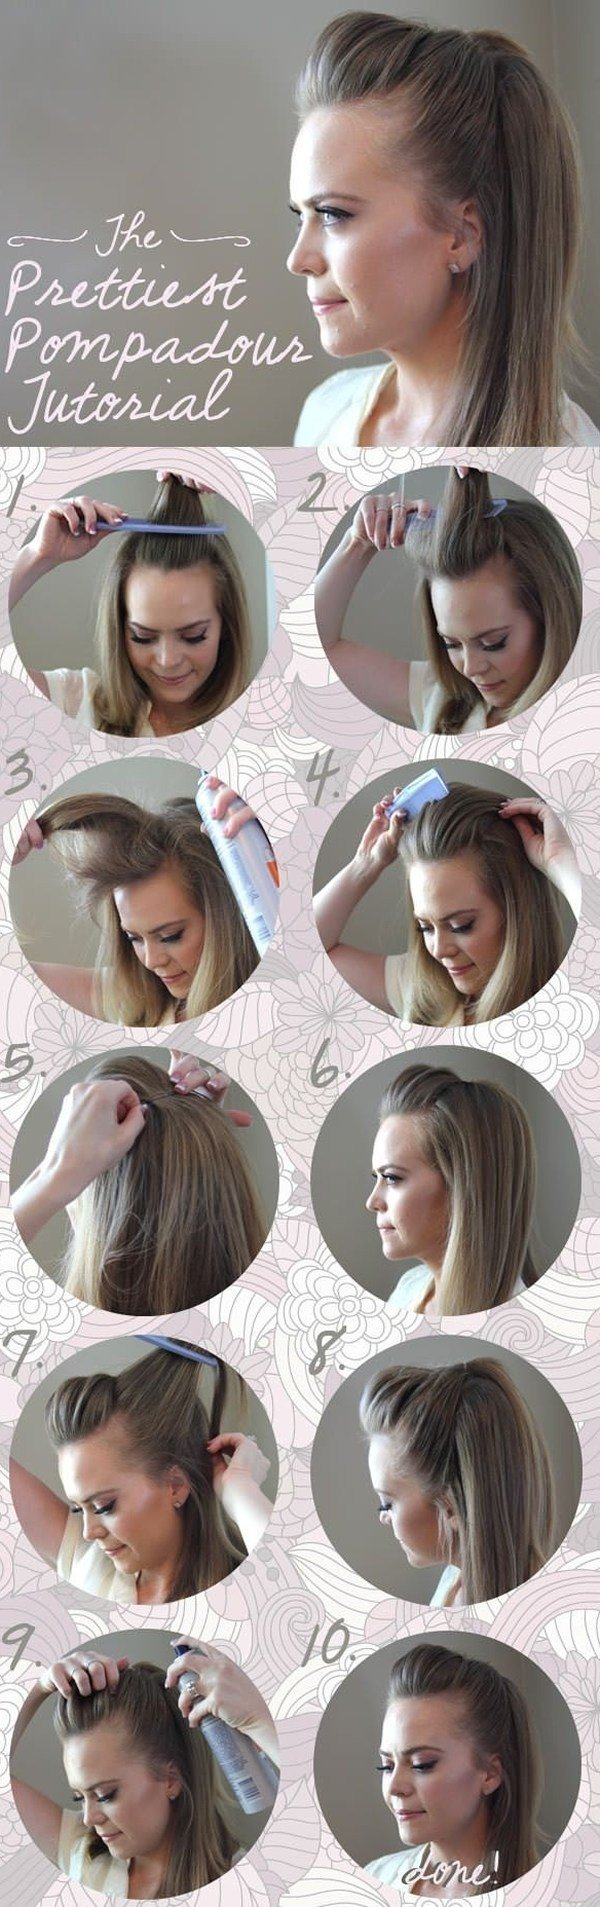 The Best 13 Five Minute Hairstyles For School Stylequick Pictures